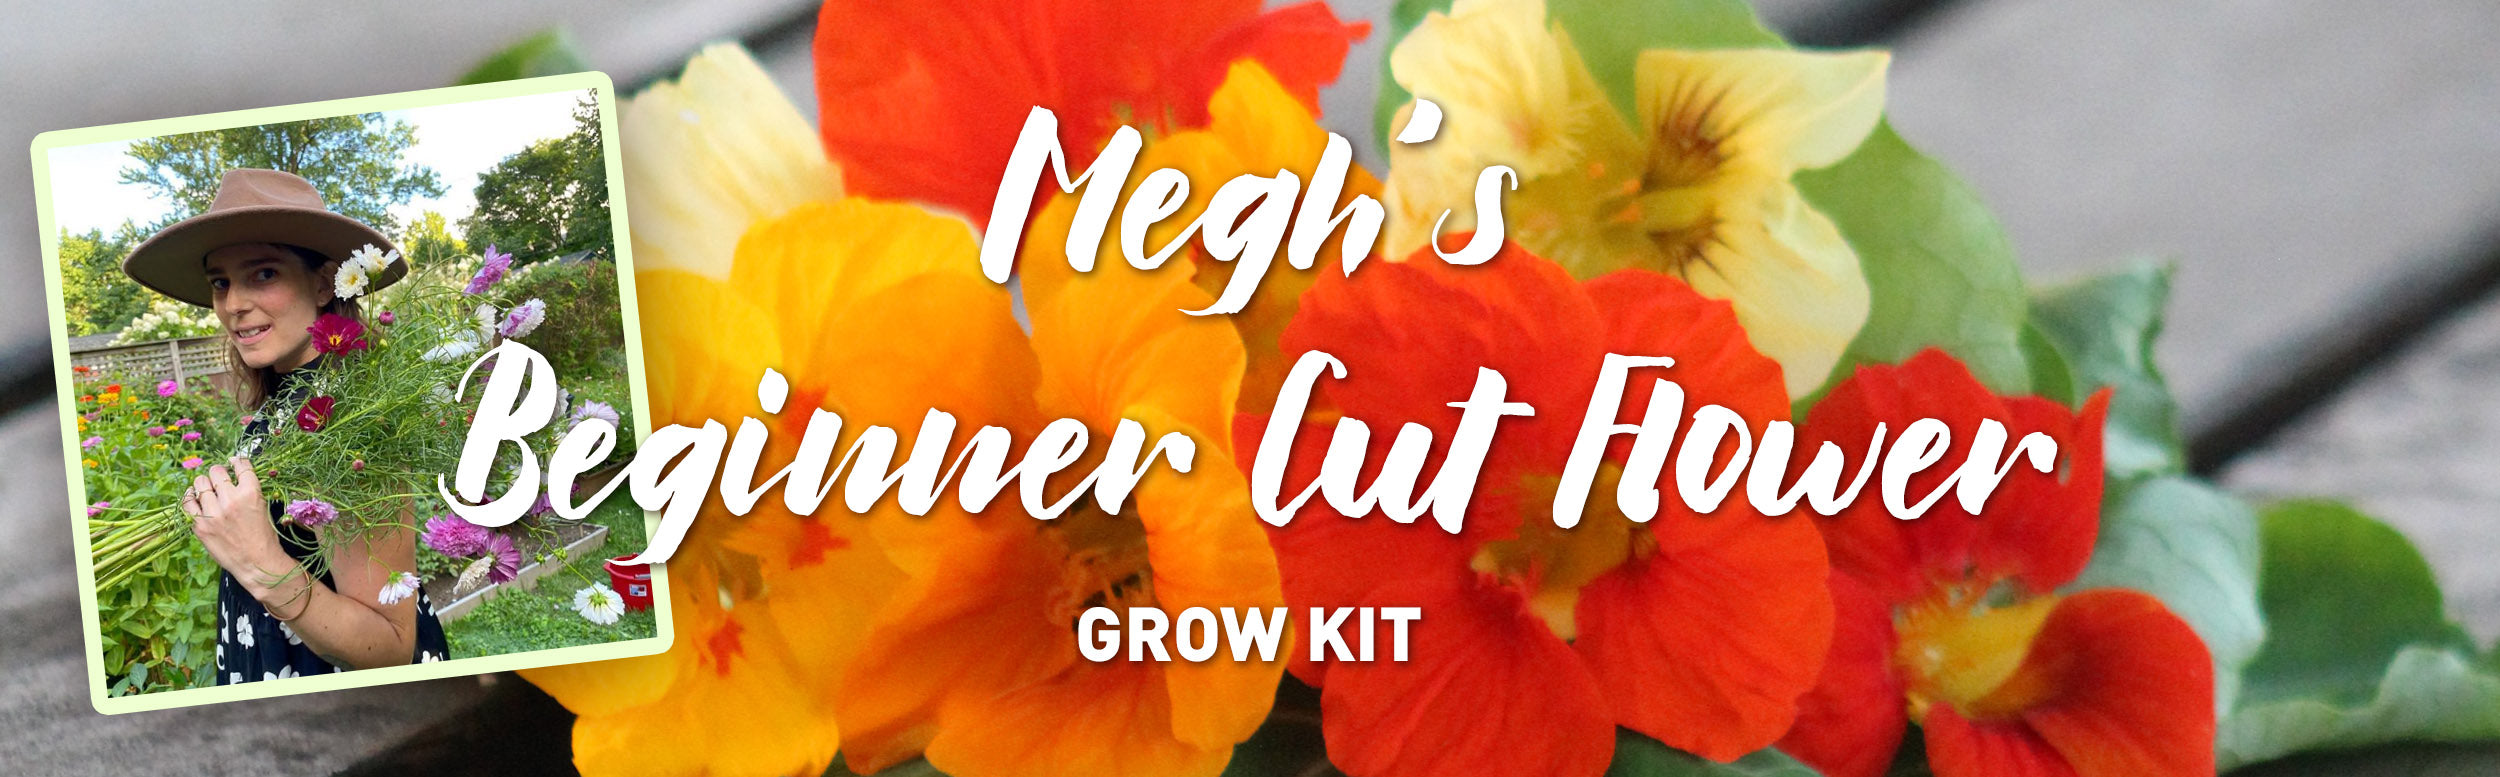 Megh's Beginner Cut Flower Grow Kit